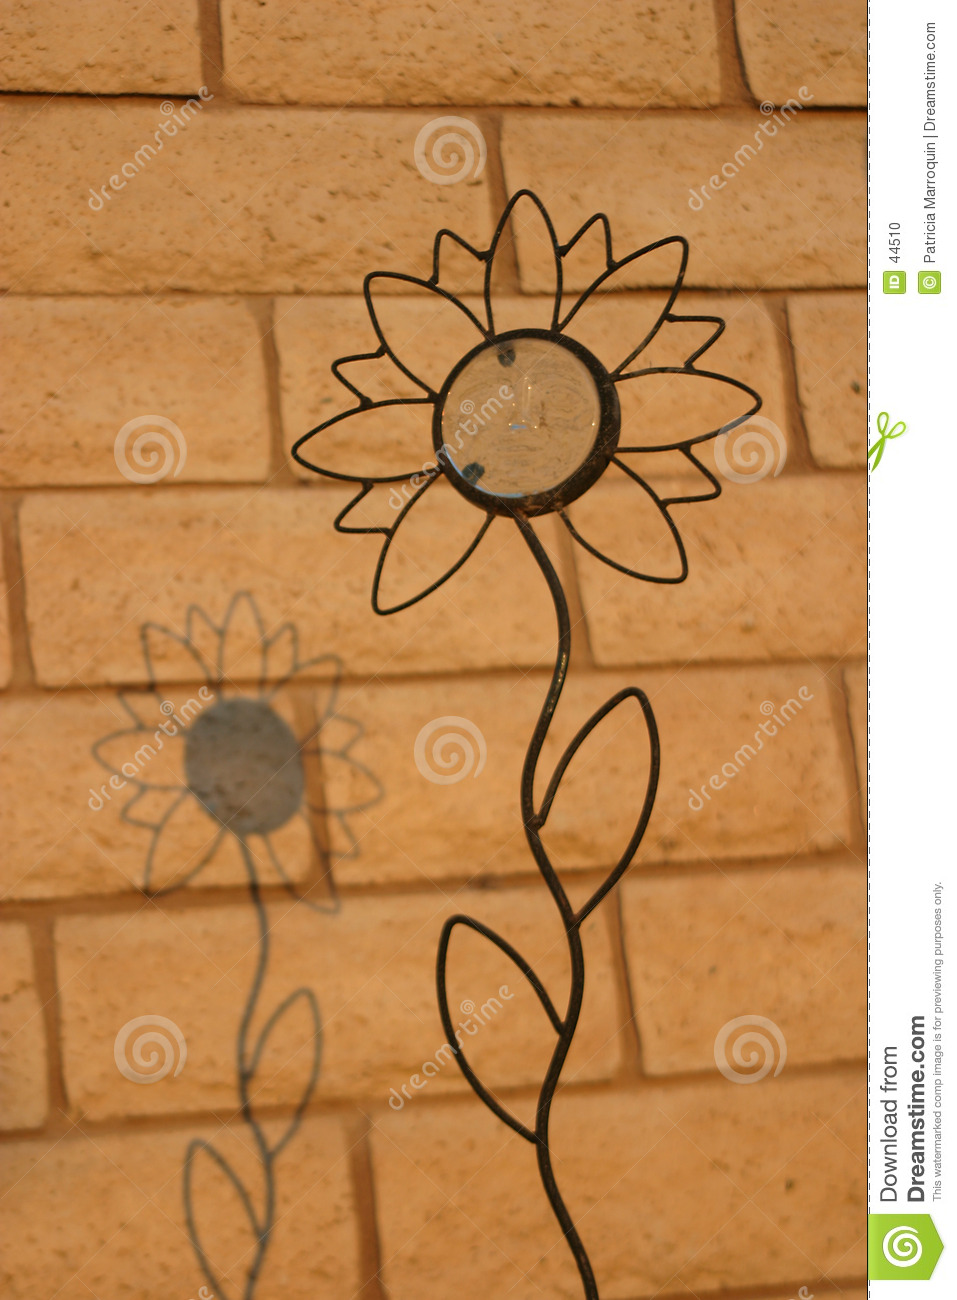 Shadow Upon a Sunflower